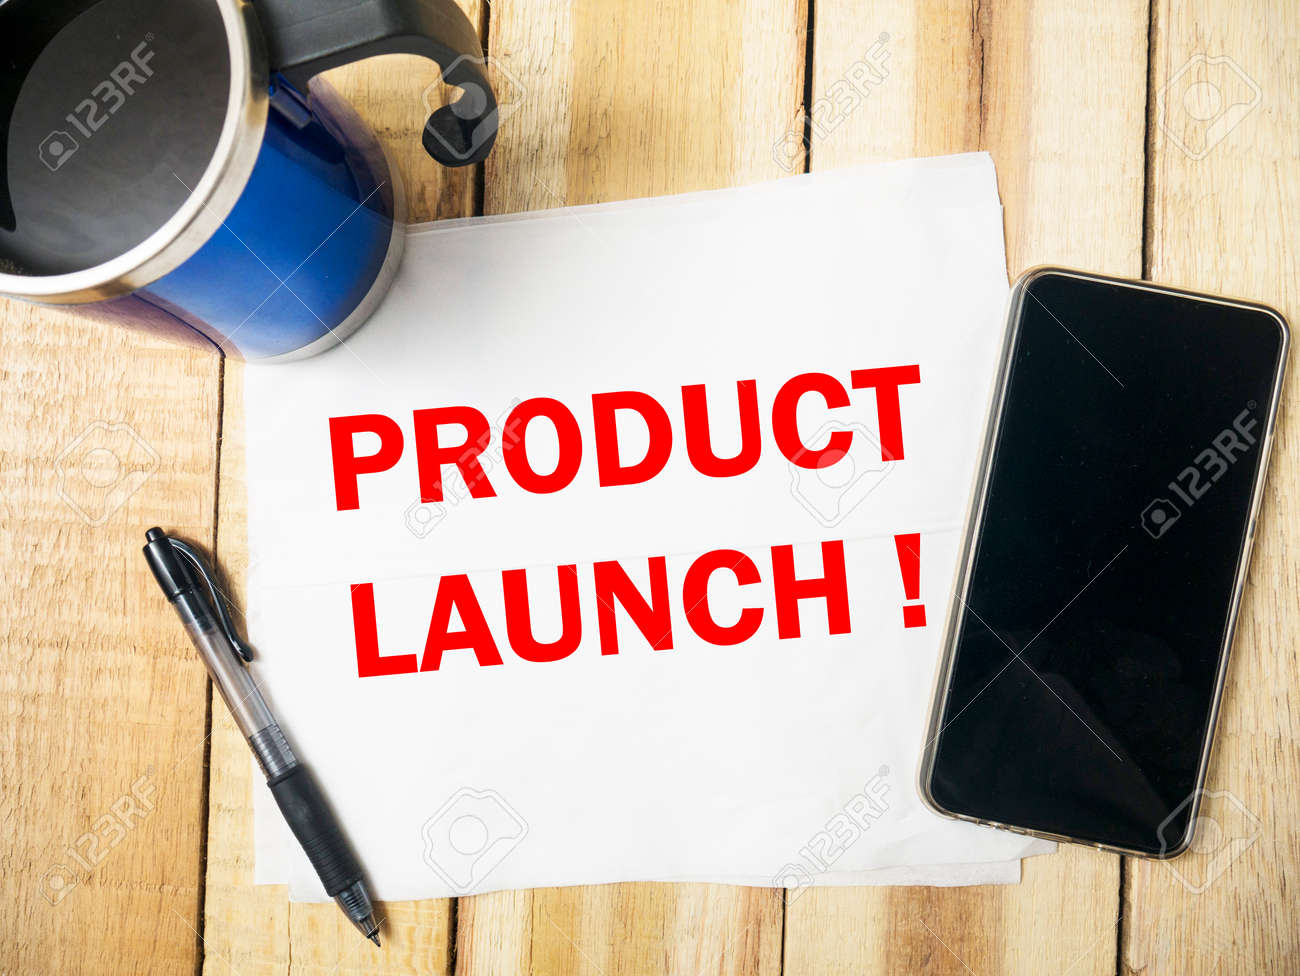 Product Launch Motivational Business Marketing Words Quotes Stock Photo Picture And Royalty Free Image Image 109733776